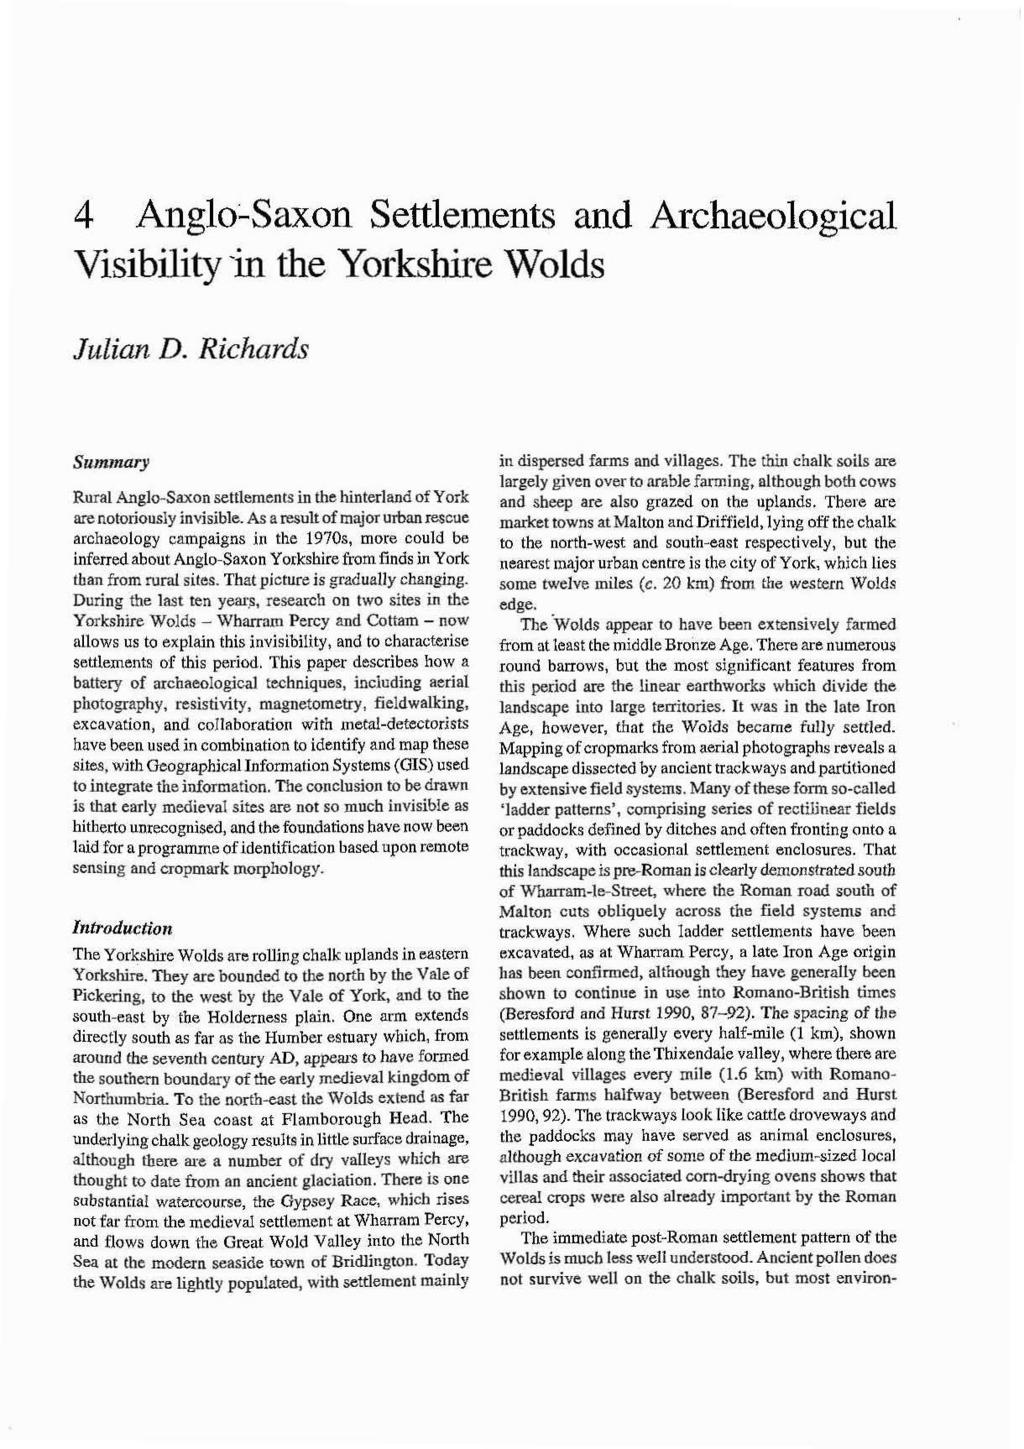 Anglo-Saxon Settlements and Archaeological Visibility -in the Yorkshre Wolds Julian D. Richards Summary Rural Anglo-Saxon settlements in the hinterland of York are notoriously invisible.